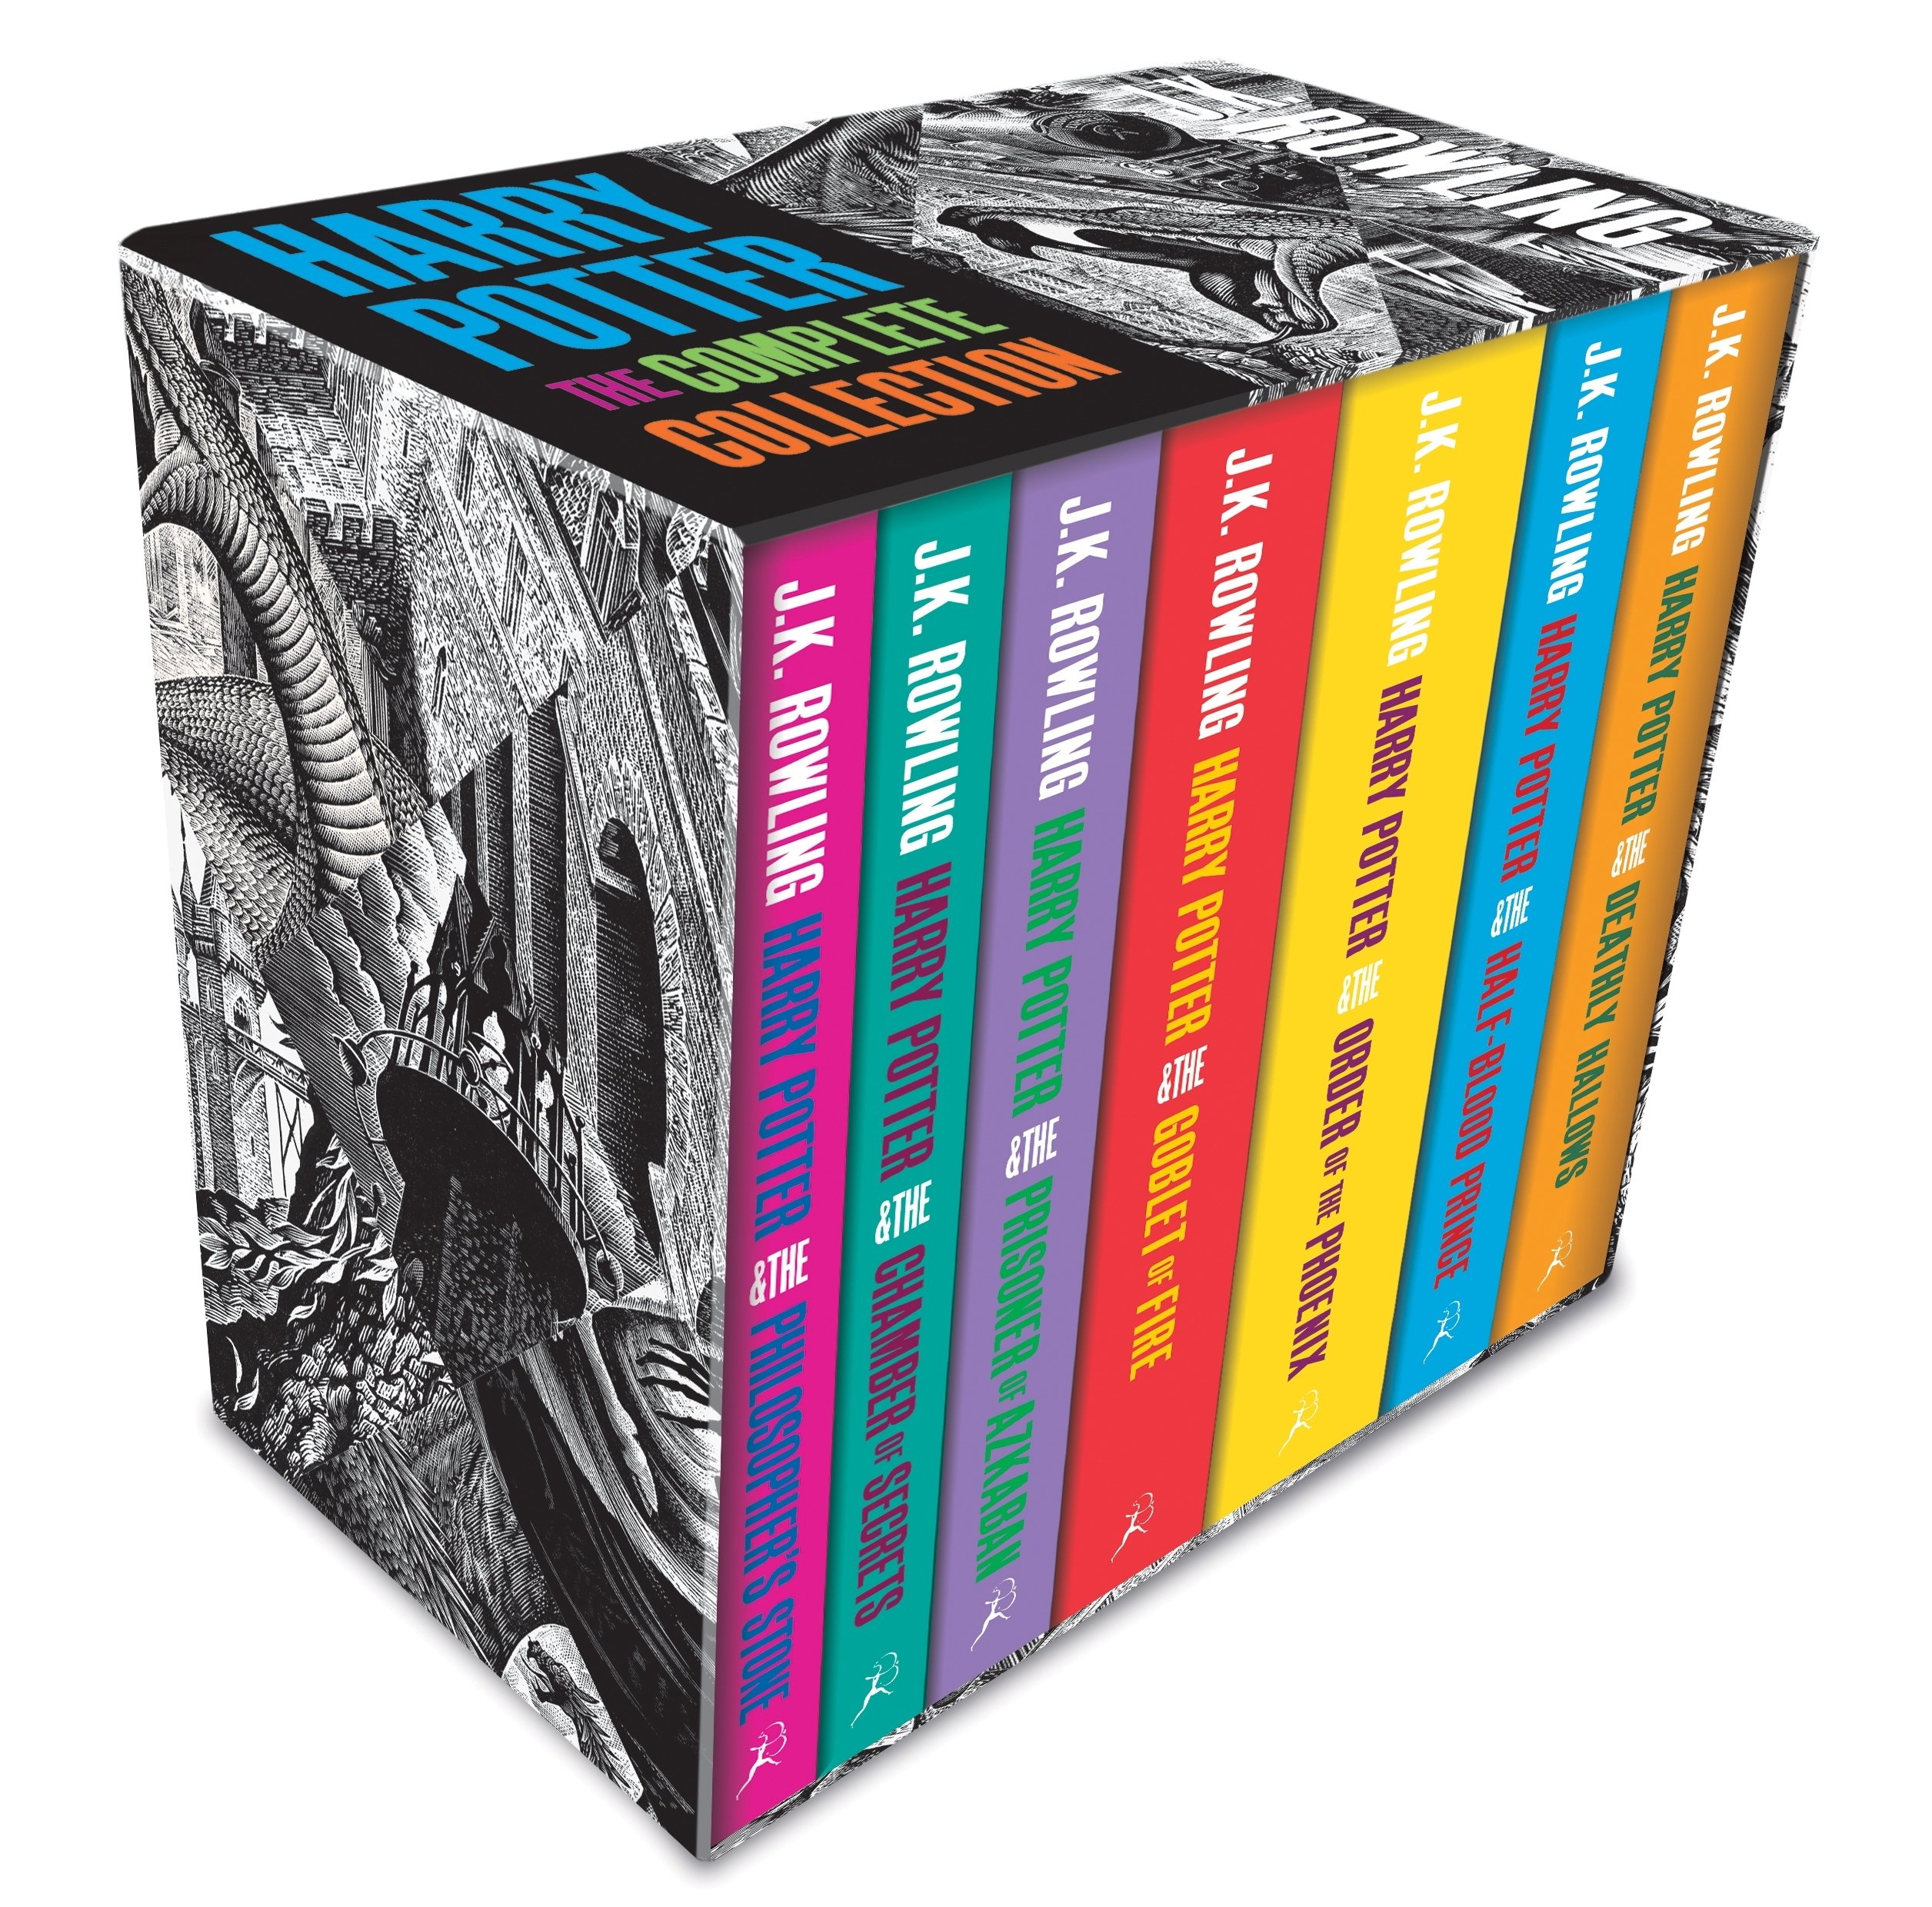 Harry Potter Boxed Set. The Complete Collection: Amazon.es ...